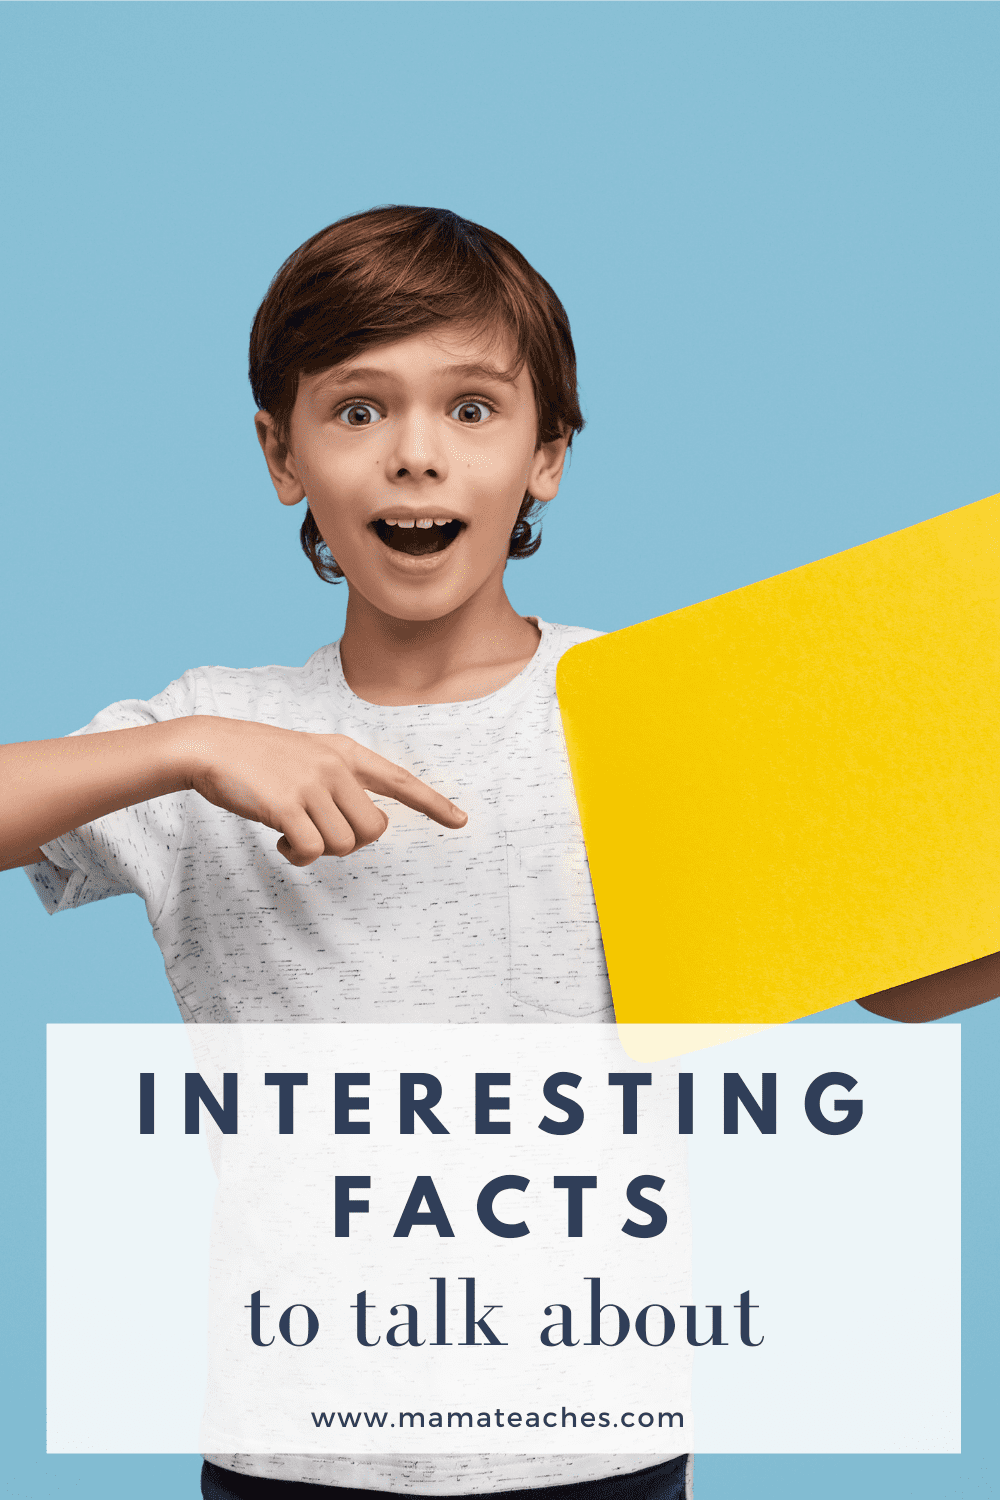 Interesting Facts to Talk About